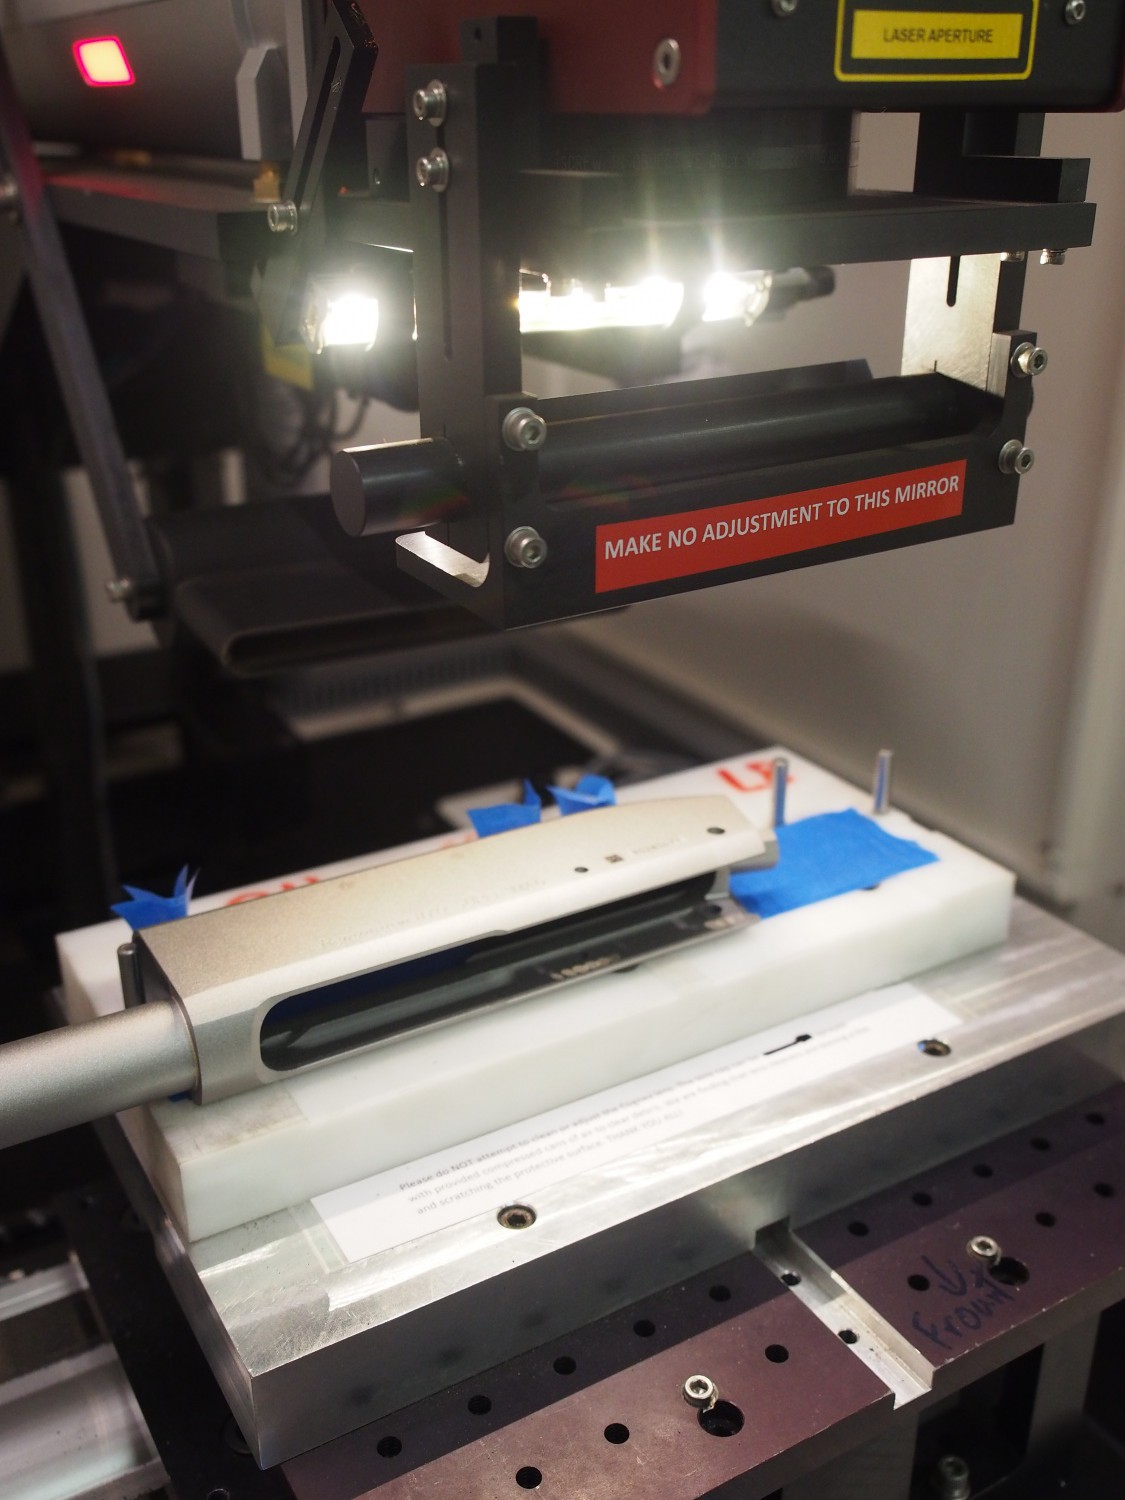 Laser engraving the receiver.